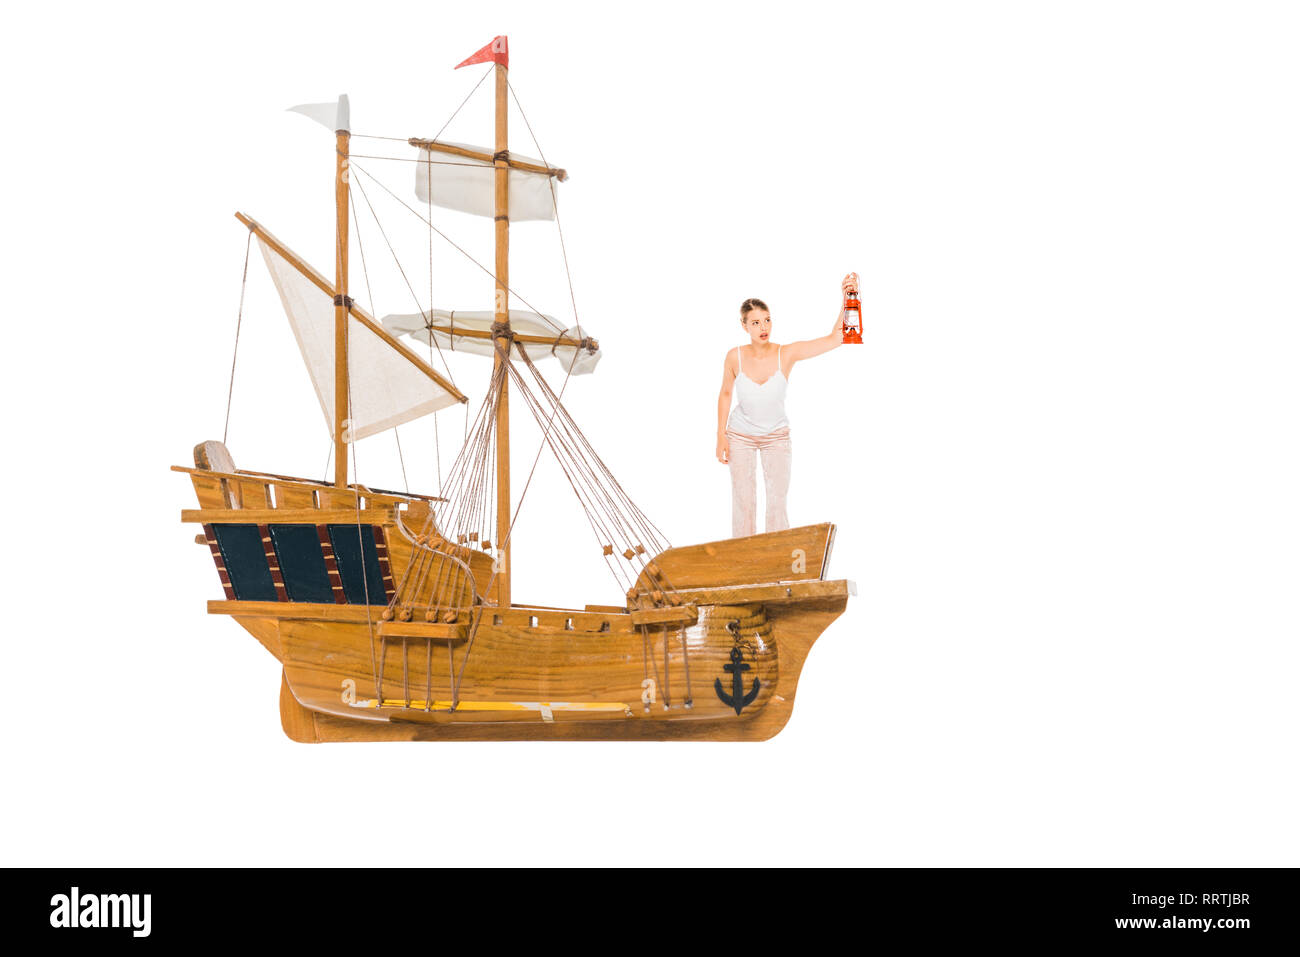 girl in pyjamas holding lantern and standing on floating ship model with copy space - Stock Image